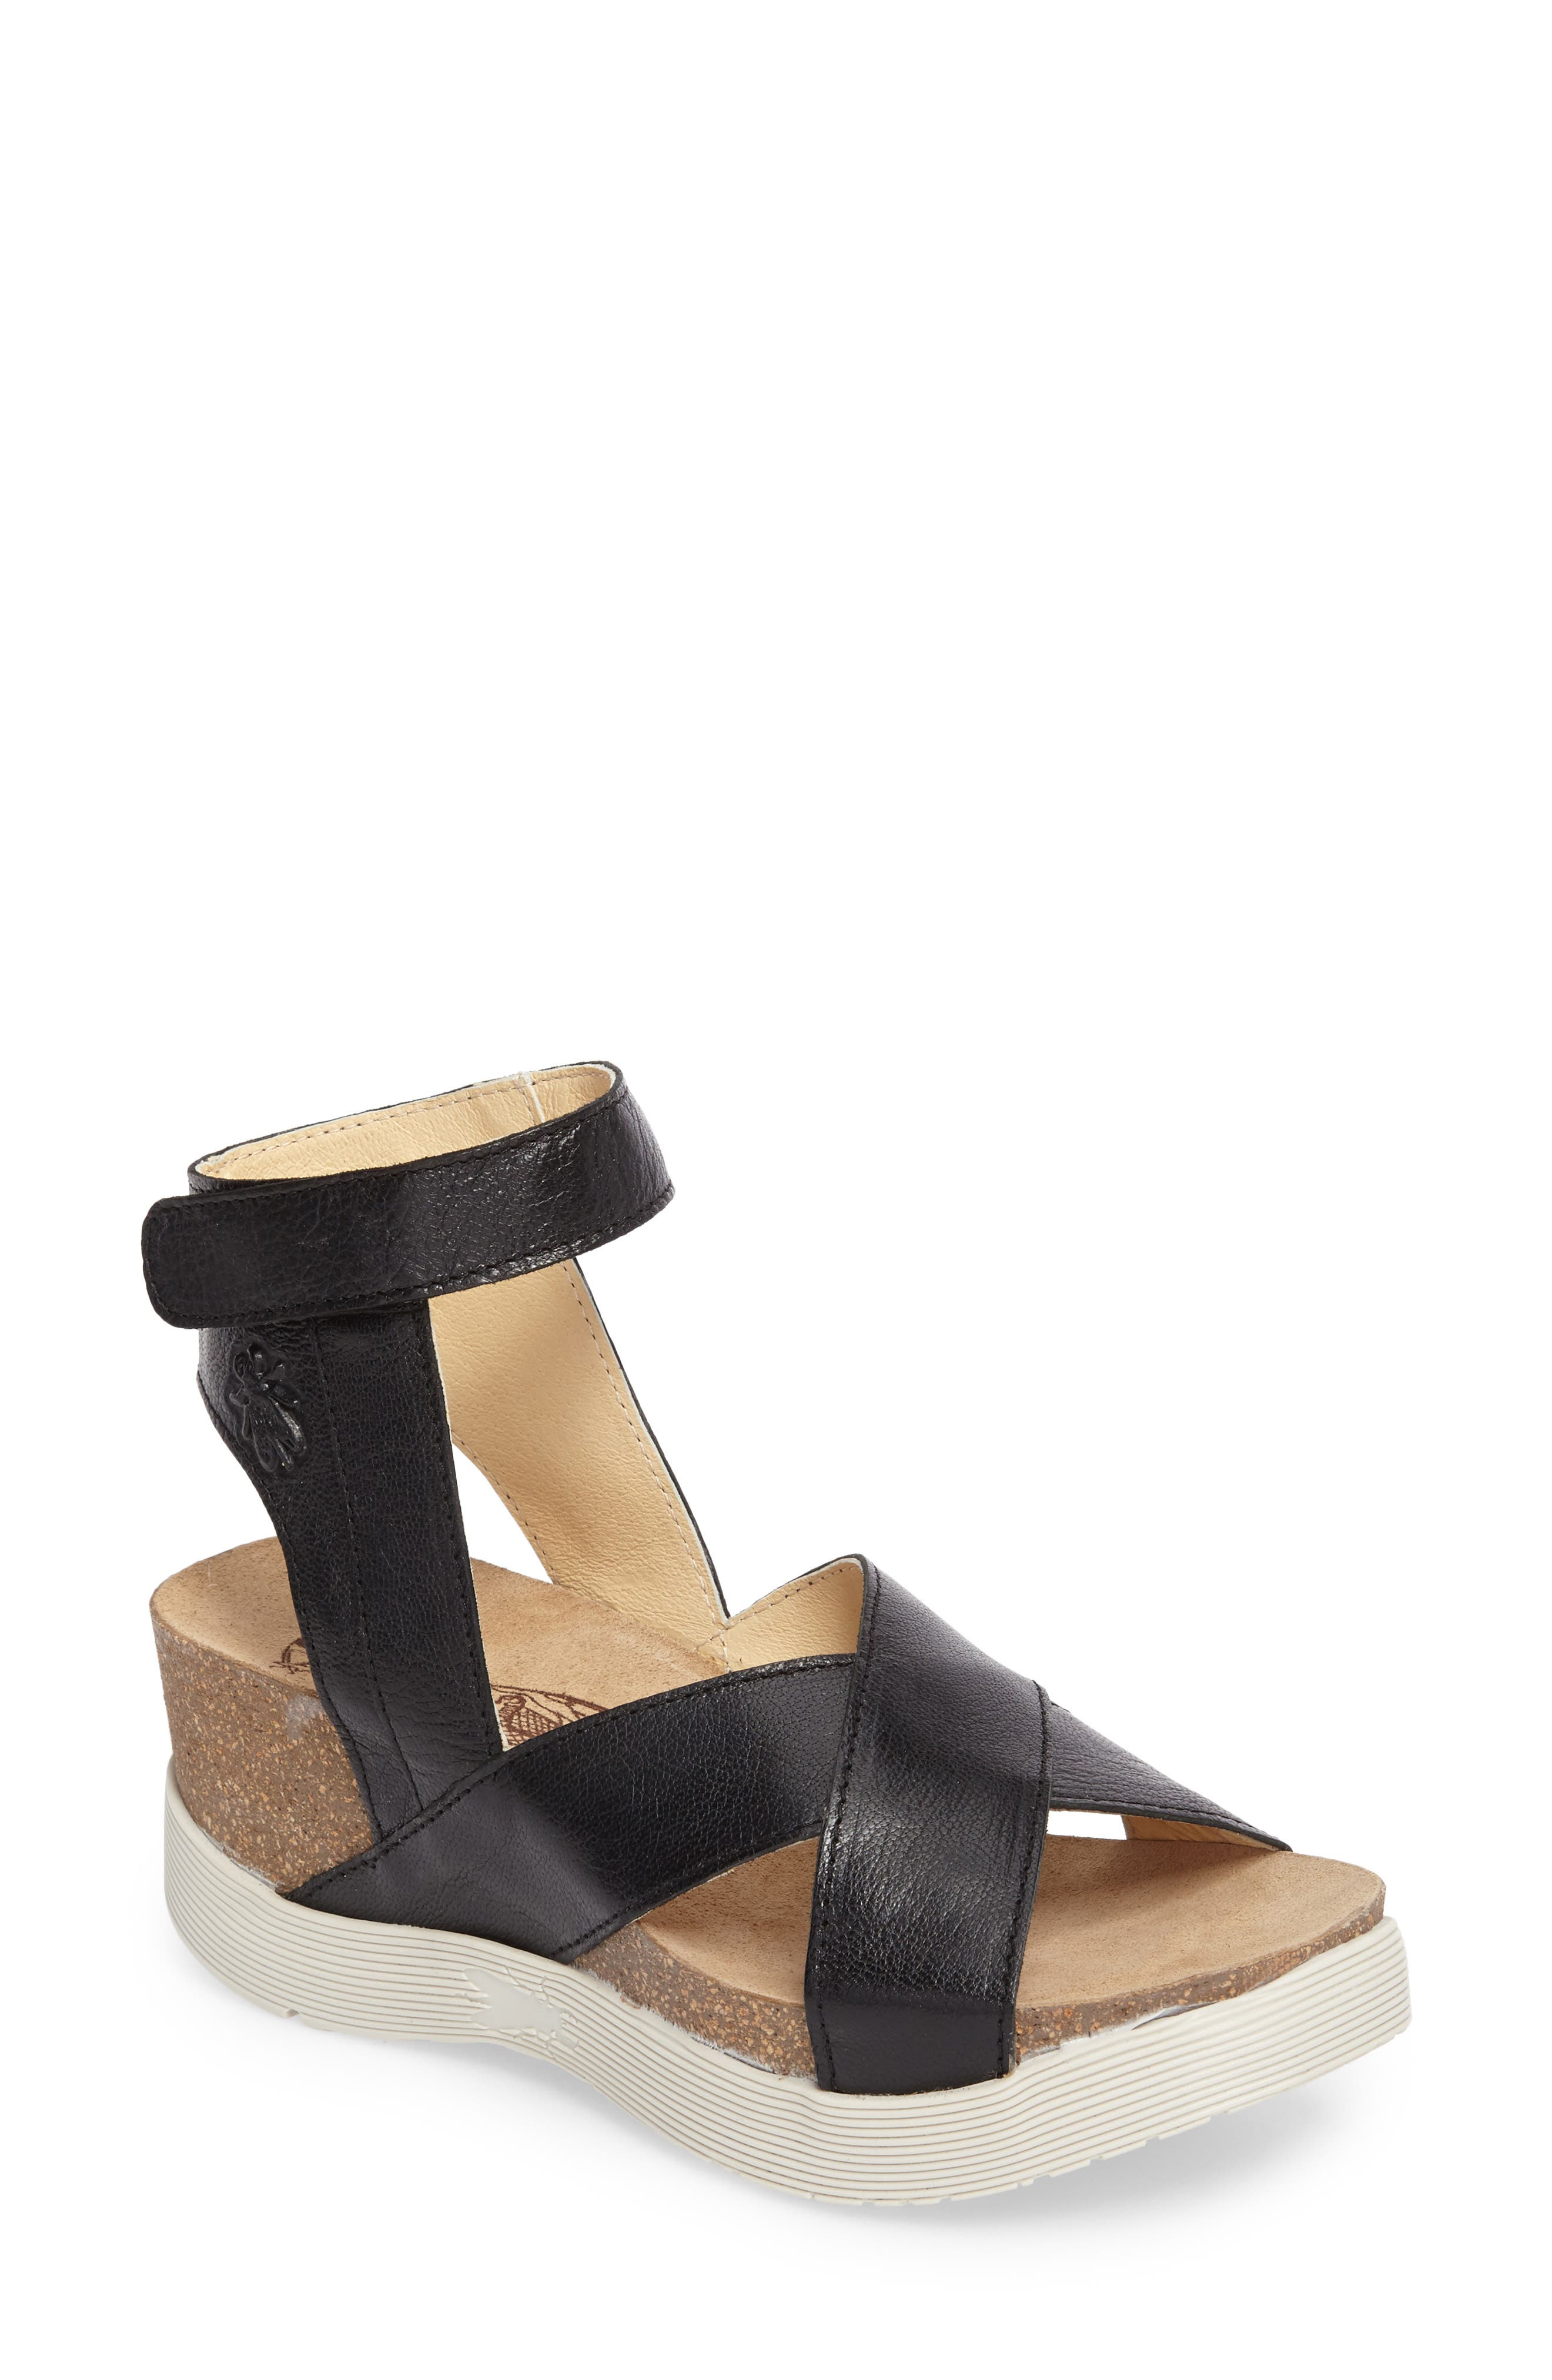 Weel Nubuck Leather Platform Sandal,                         Main,                         color, BLACK MOUSSE LEATHER